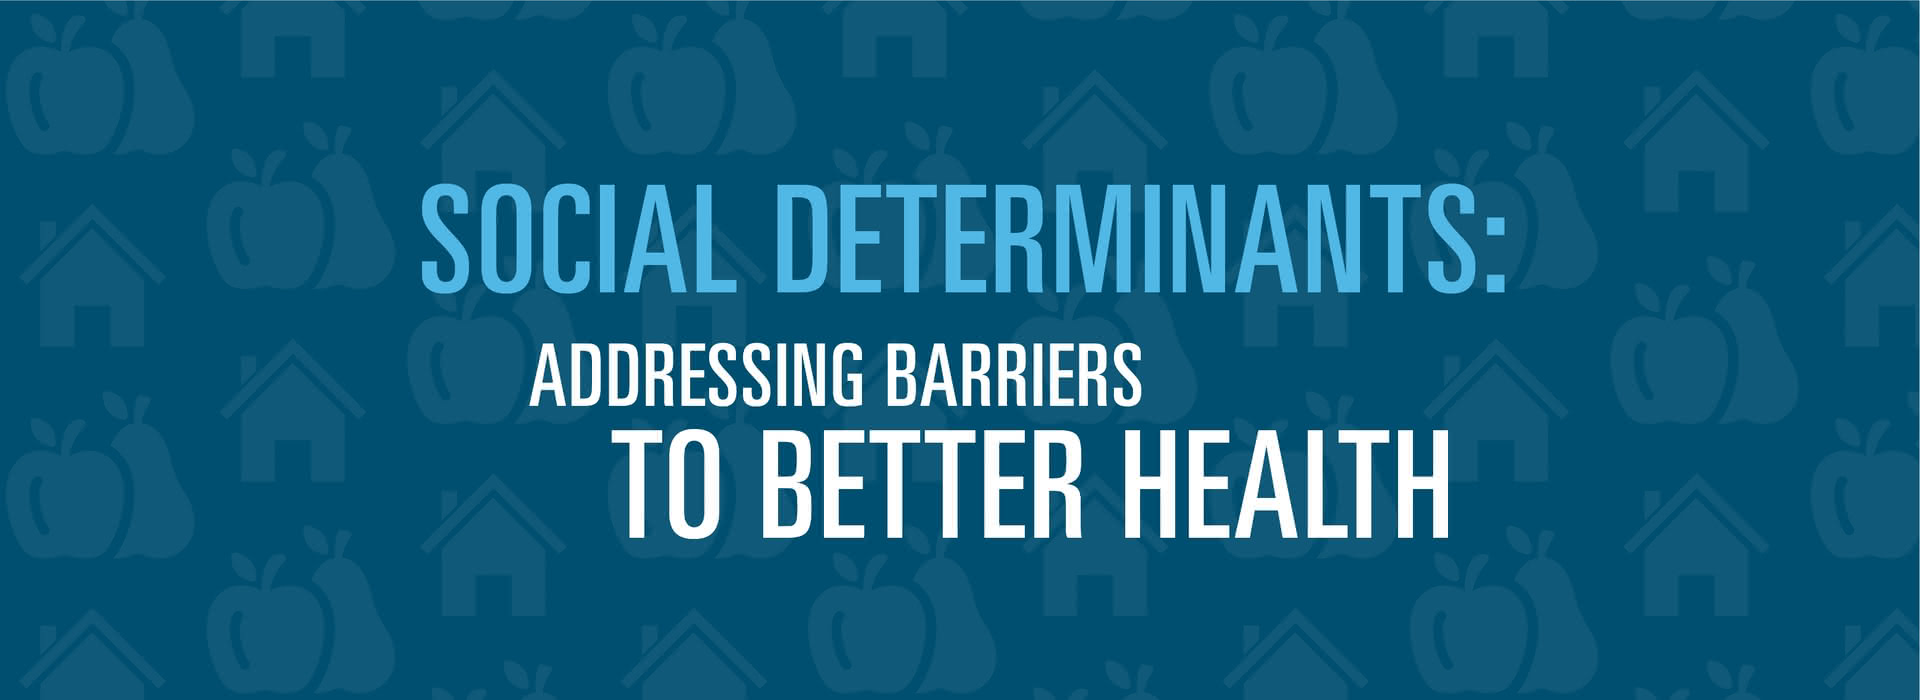 2020 Hero Social DeterminantsUpdate 4.13.20